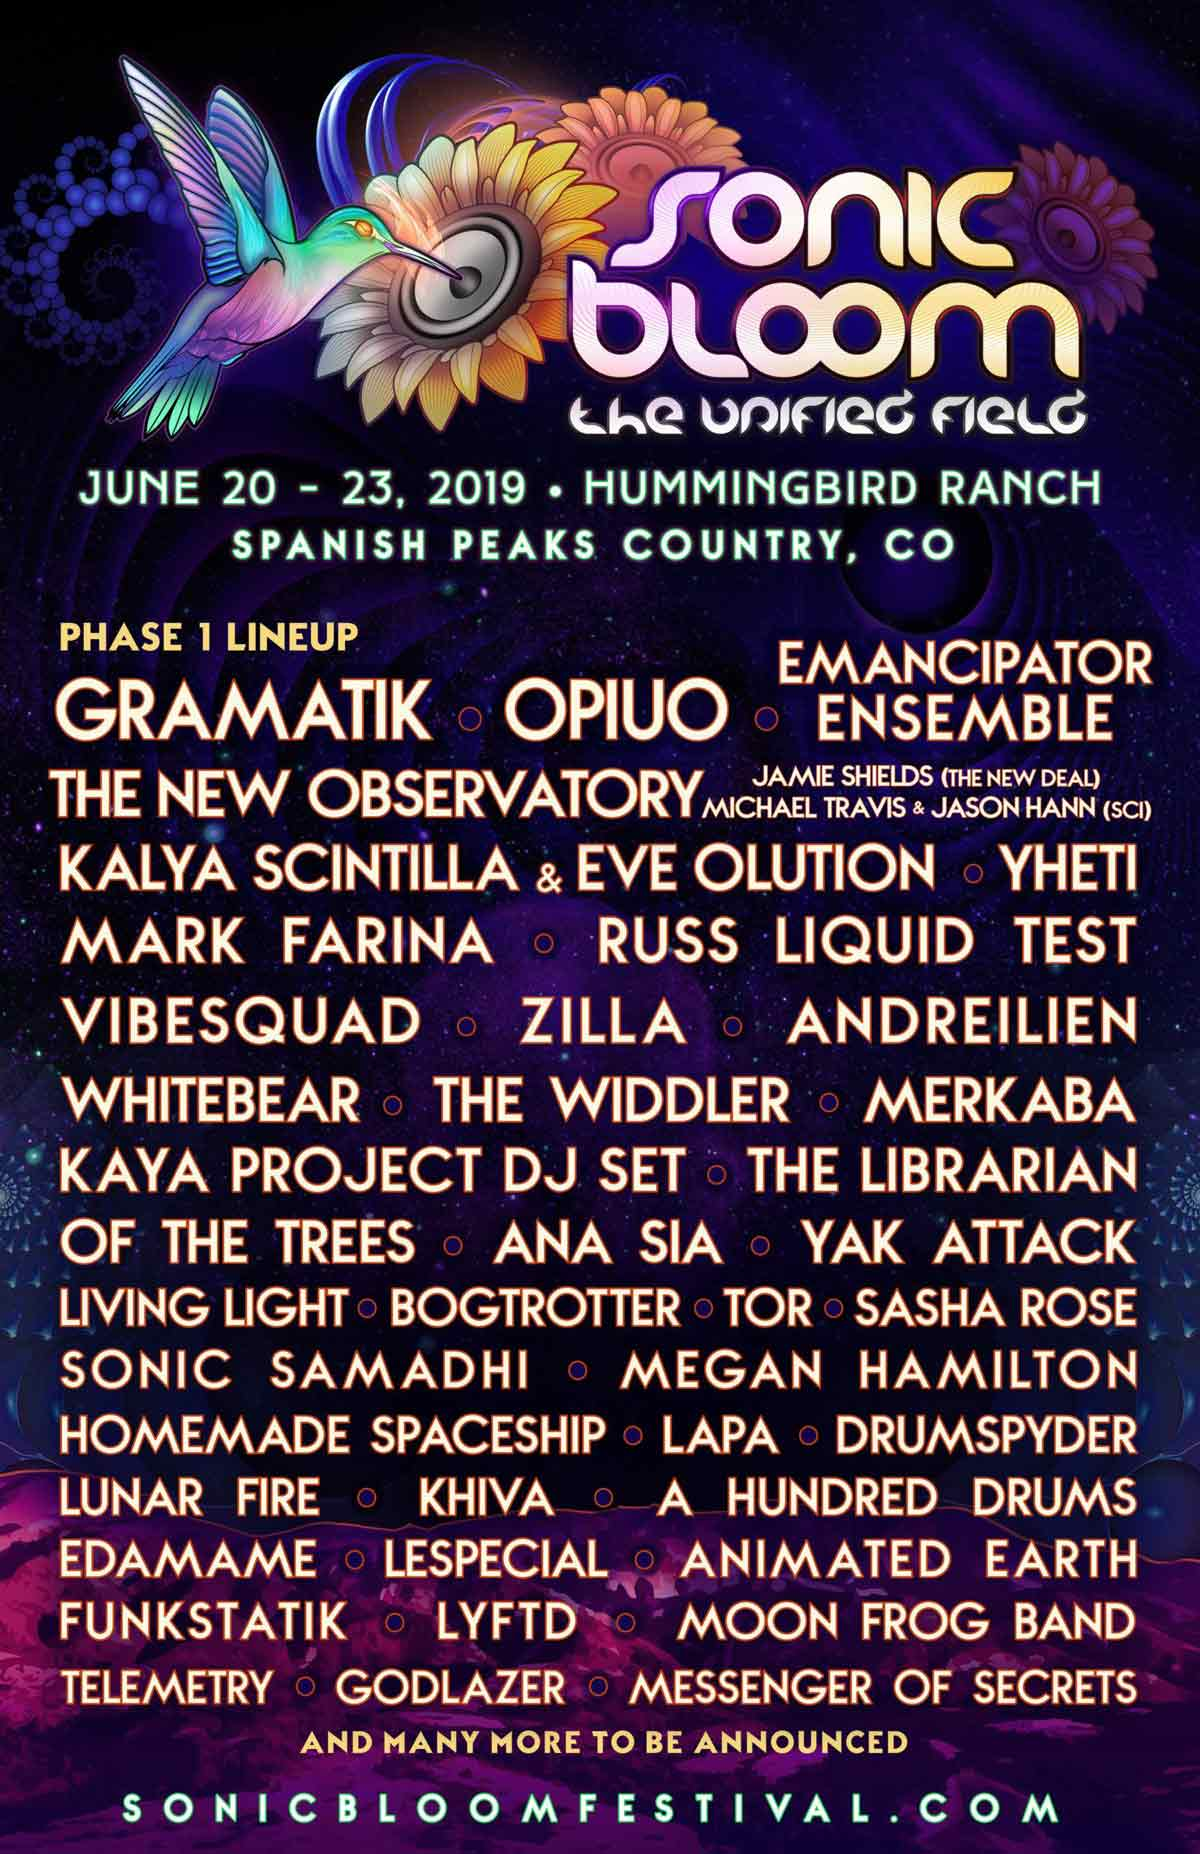 2019 sonic bloom music festival lineup